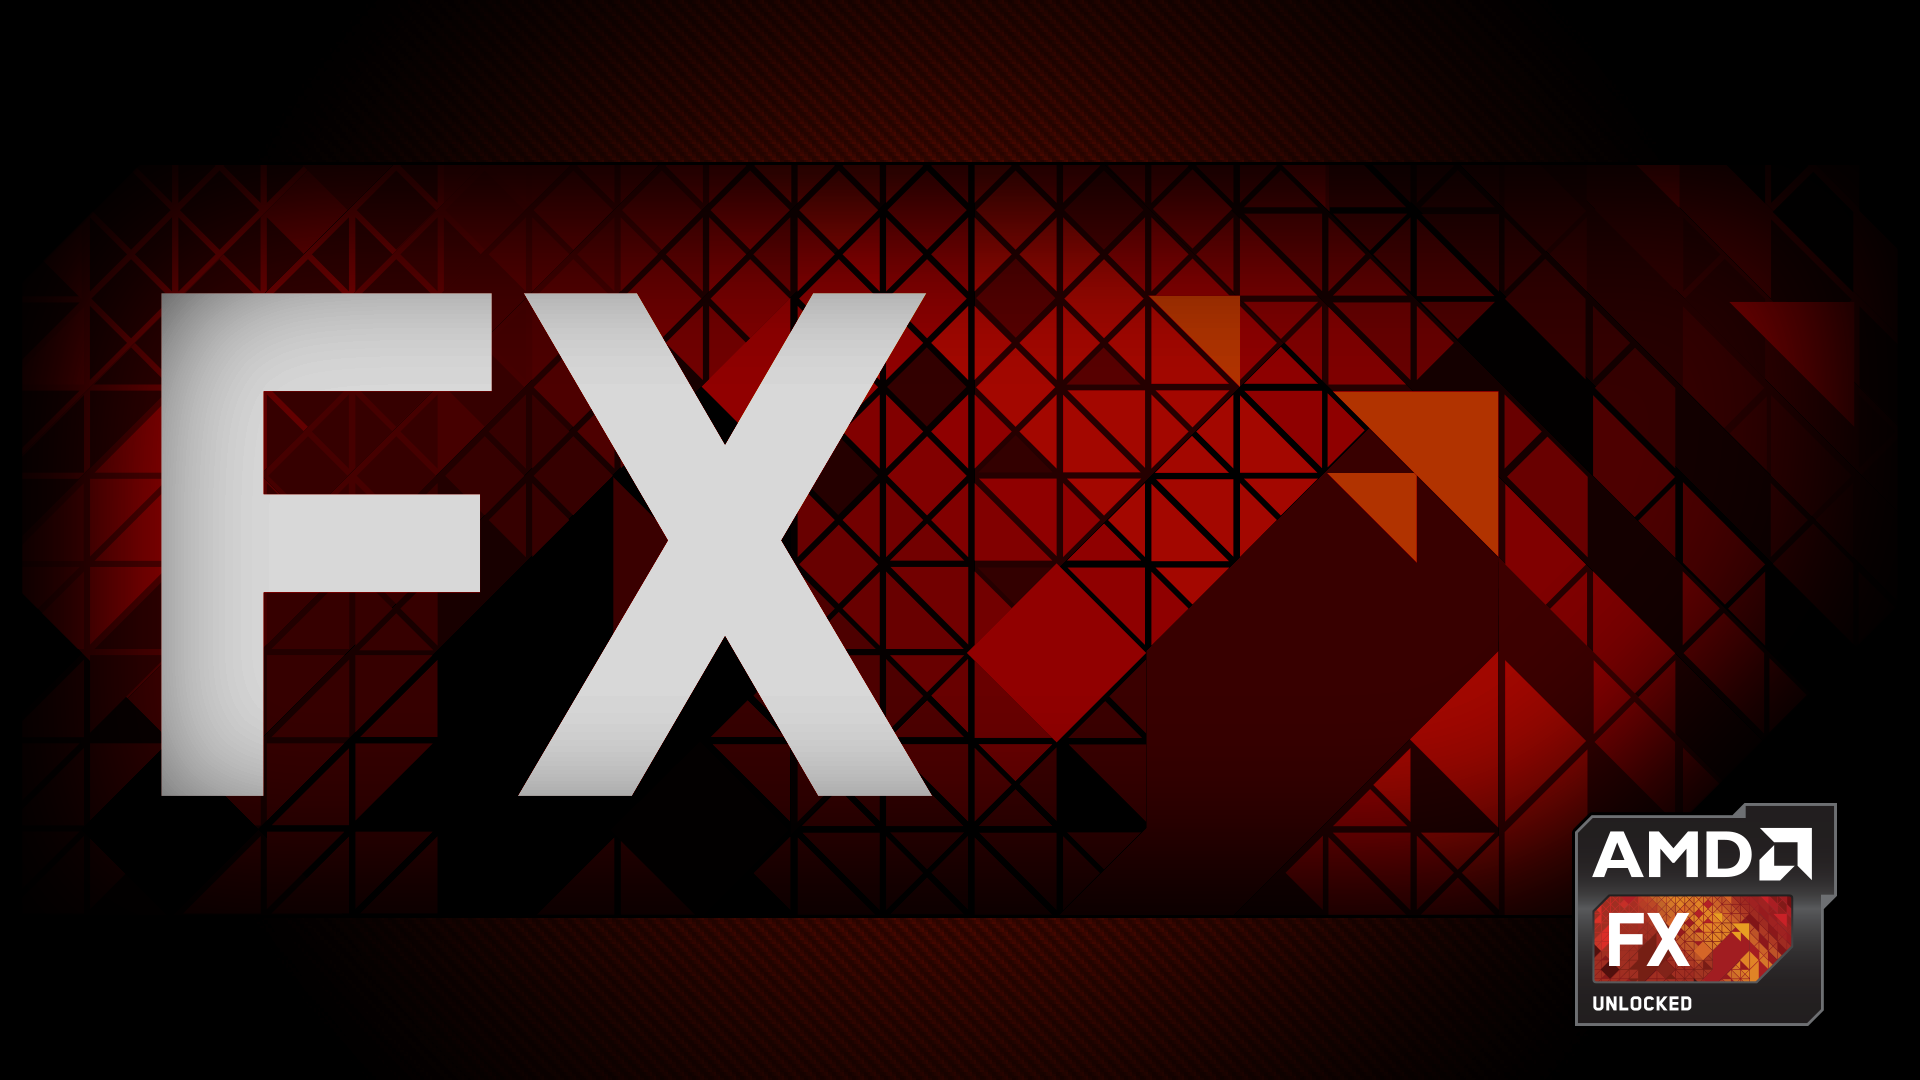 amd fx wallpaper! - overclock - an overclocking community